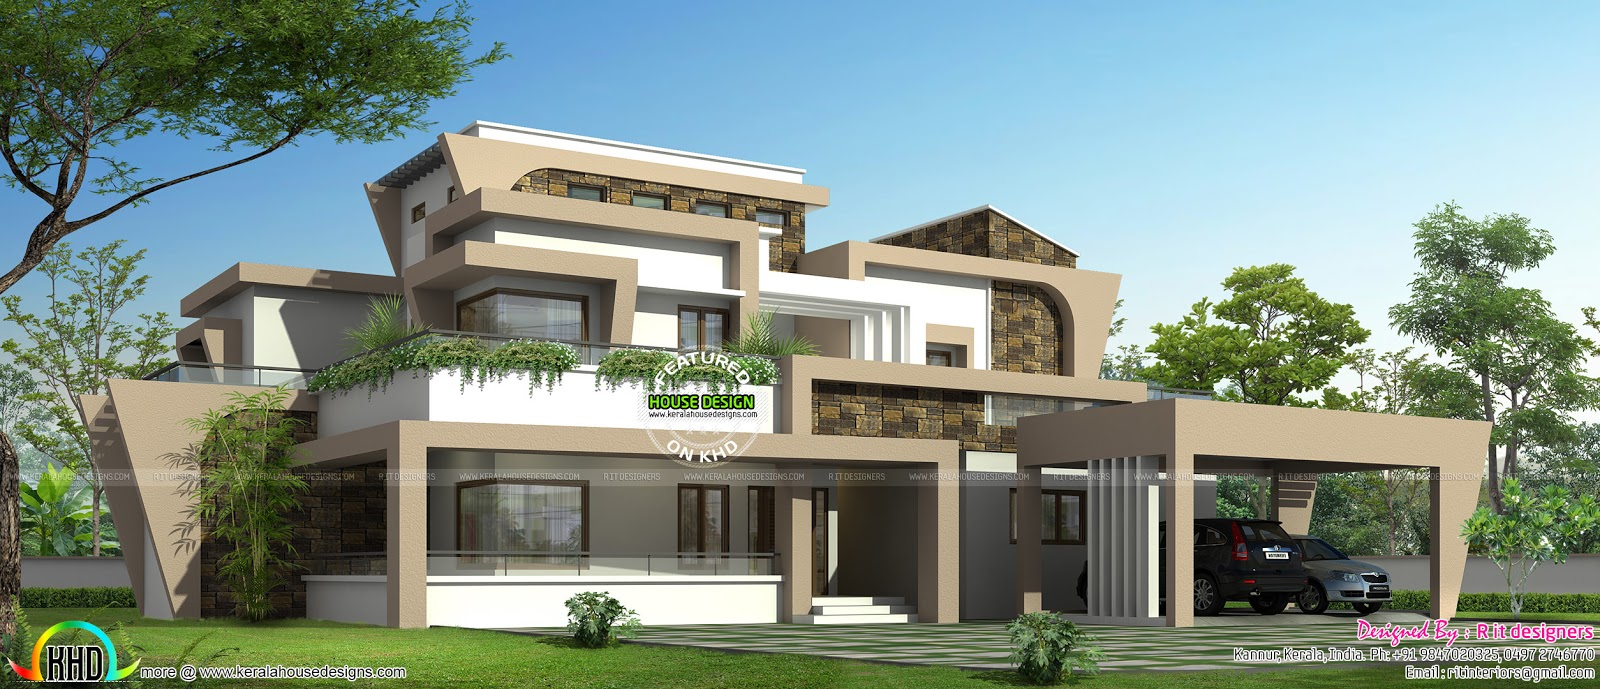 unique modern home design in kerala kerala home design On unique modern house plans